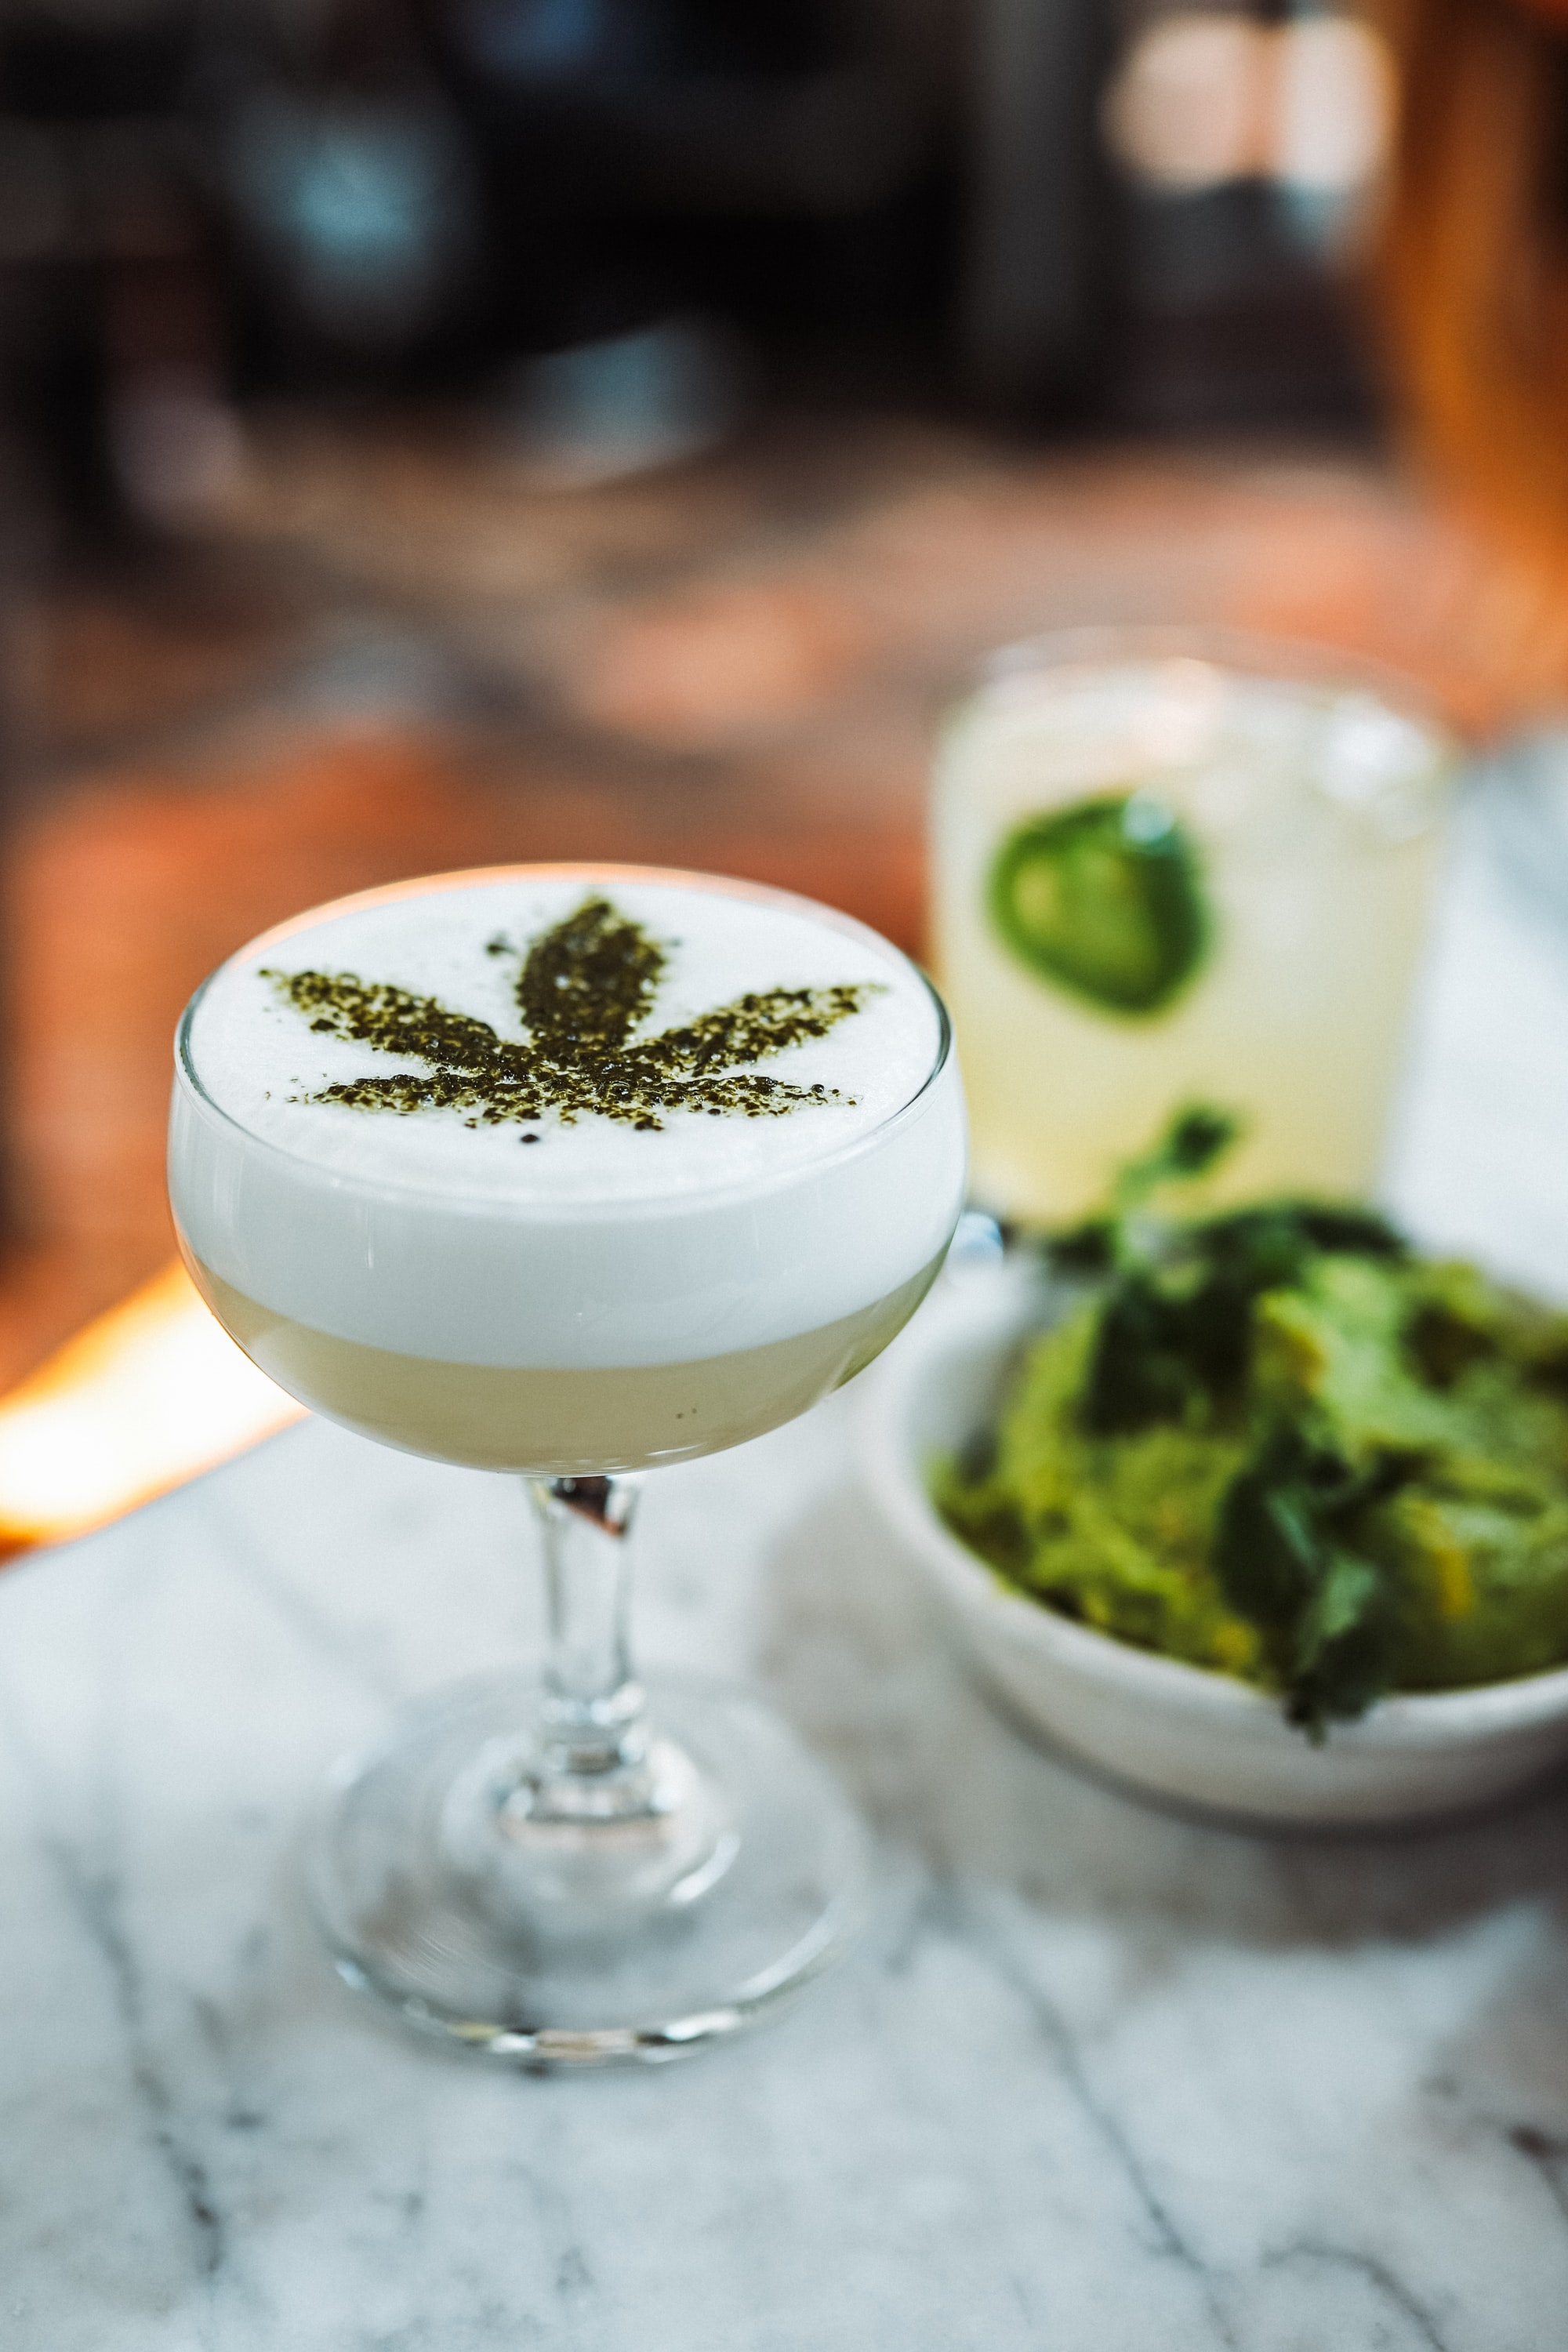 Handcrafted CBD cocktails at Gracias Madres in the heart of West Hollywood.